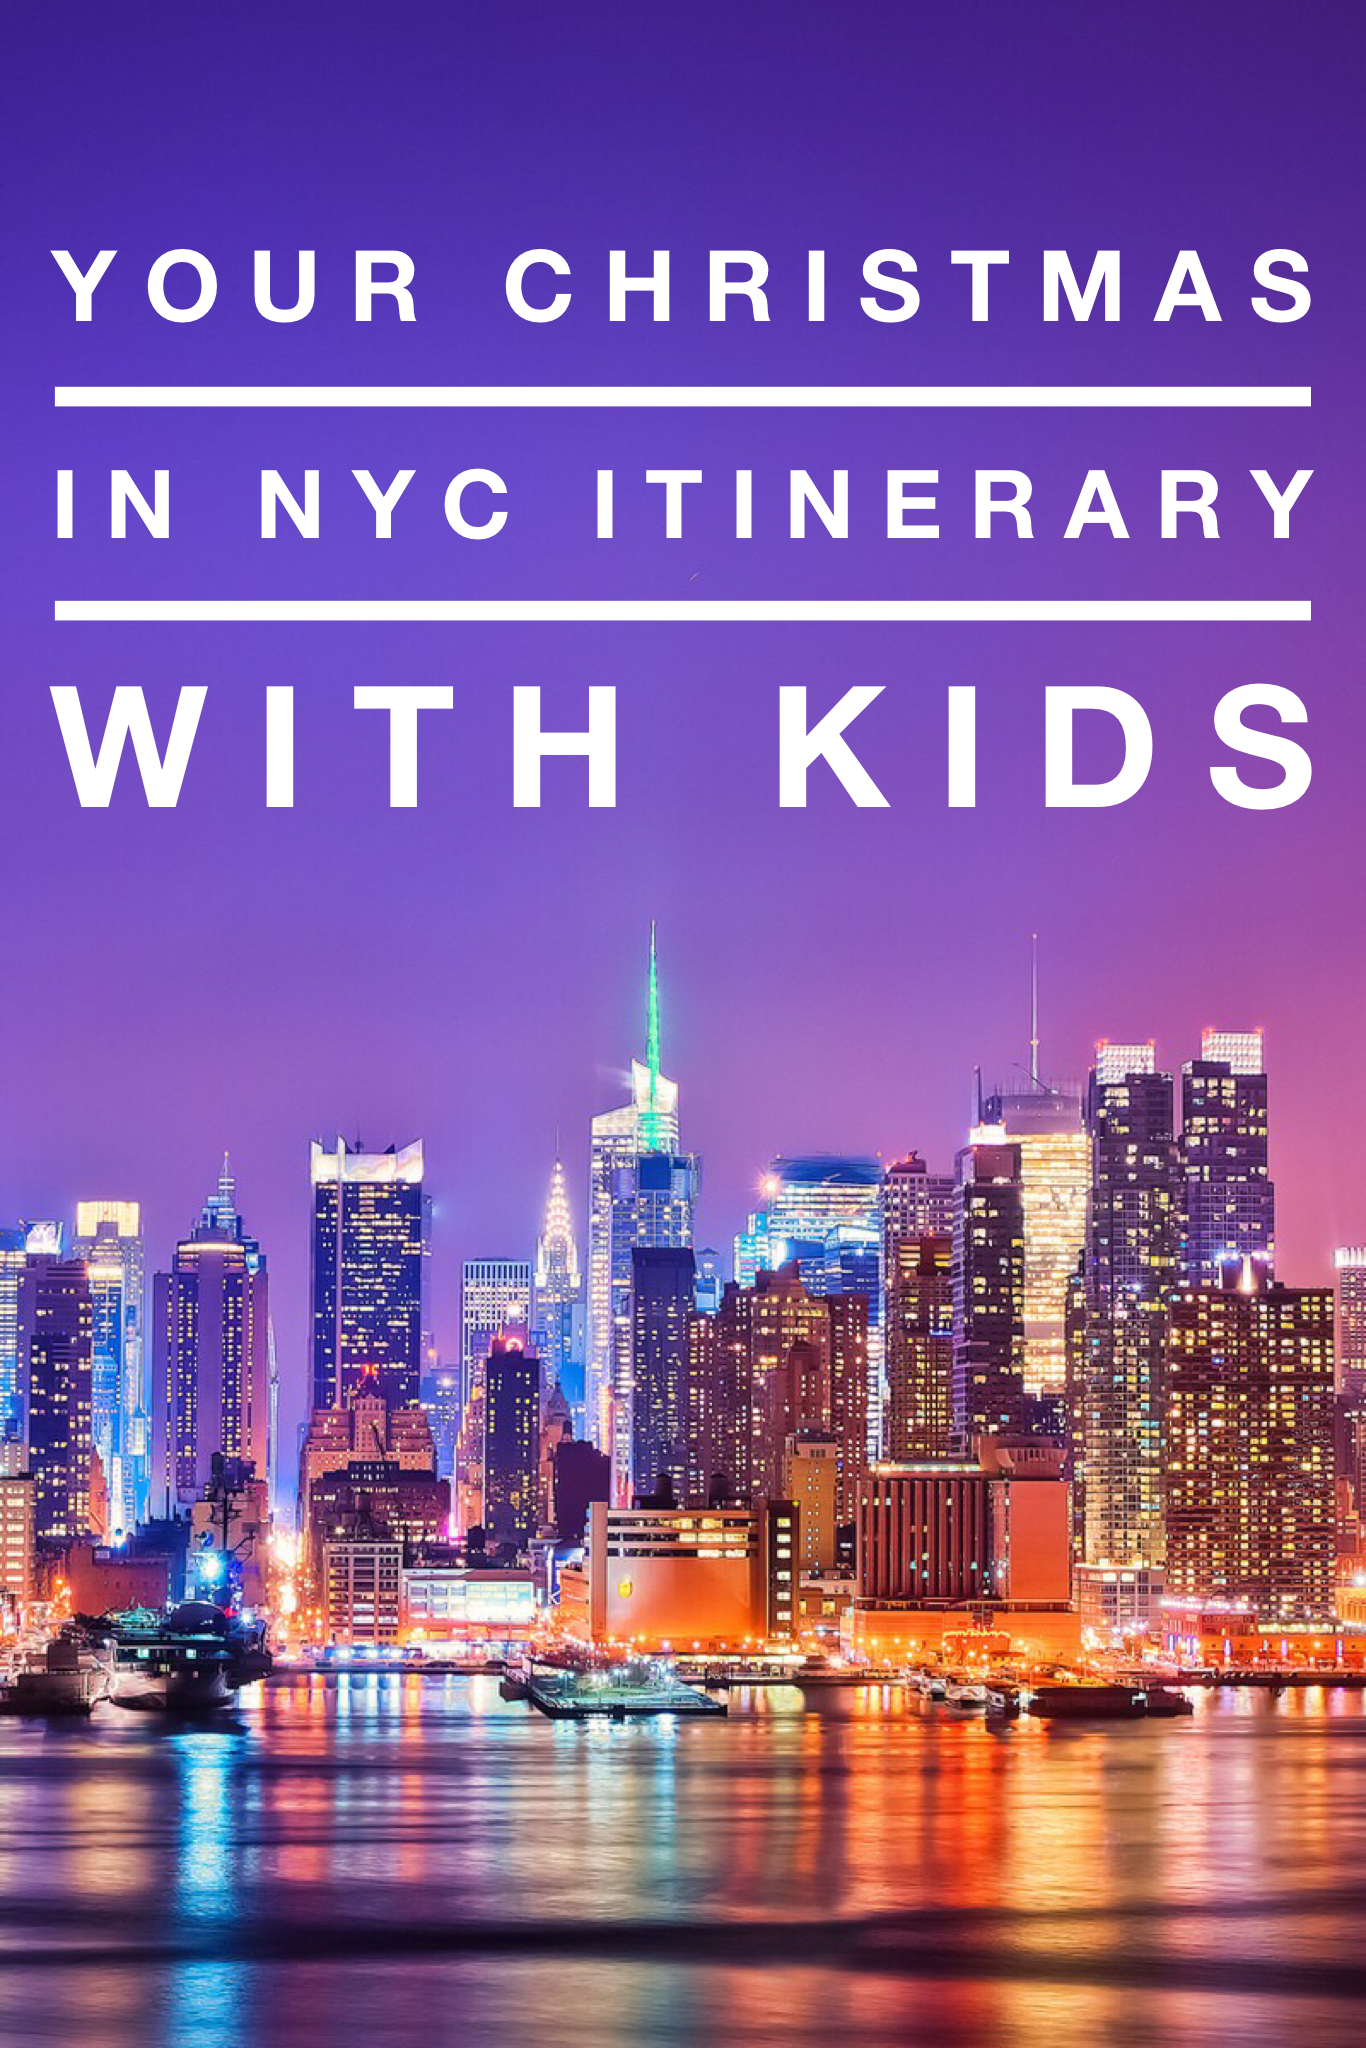 Two Day NYC itinerary with kids at Christmas | Nyc itinerary, New york city vacation, Nyc trip ...